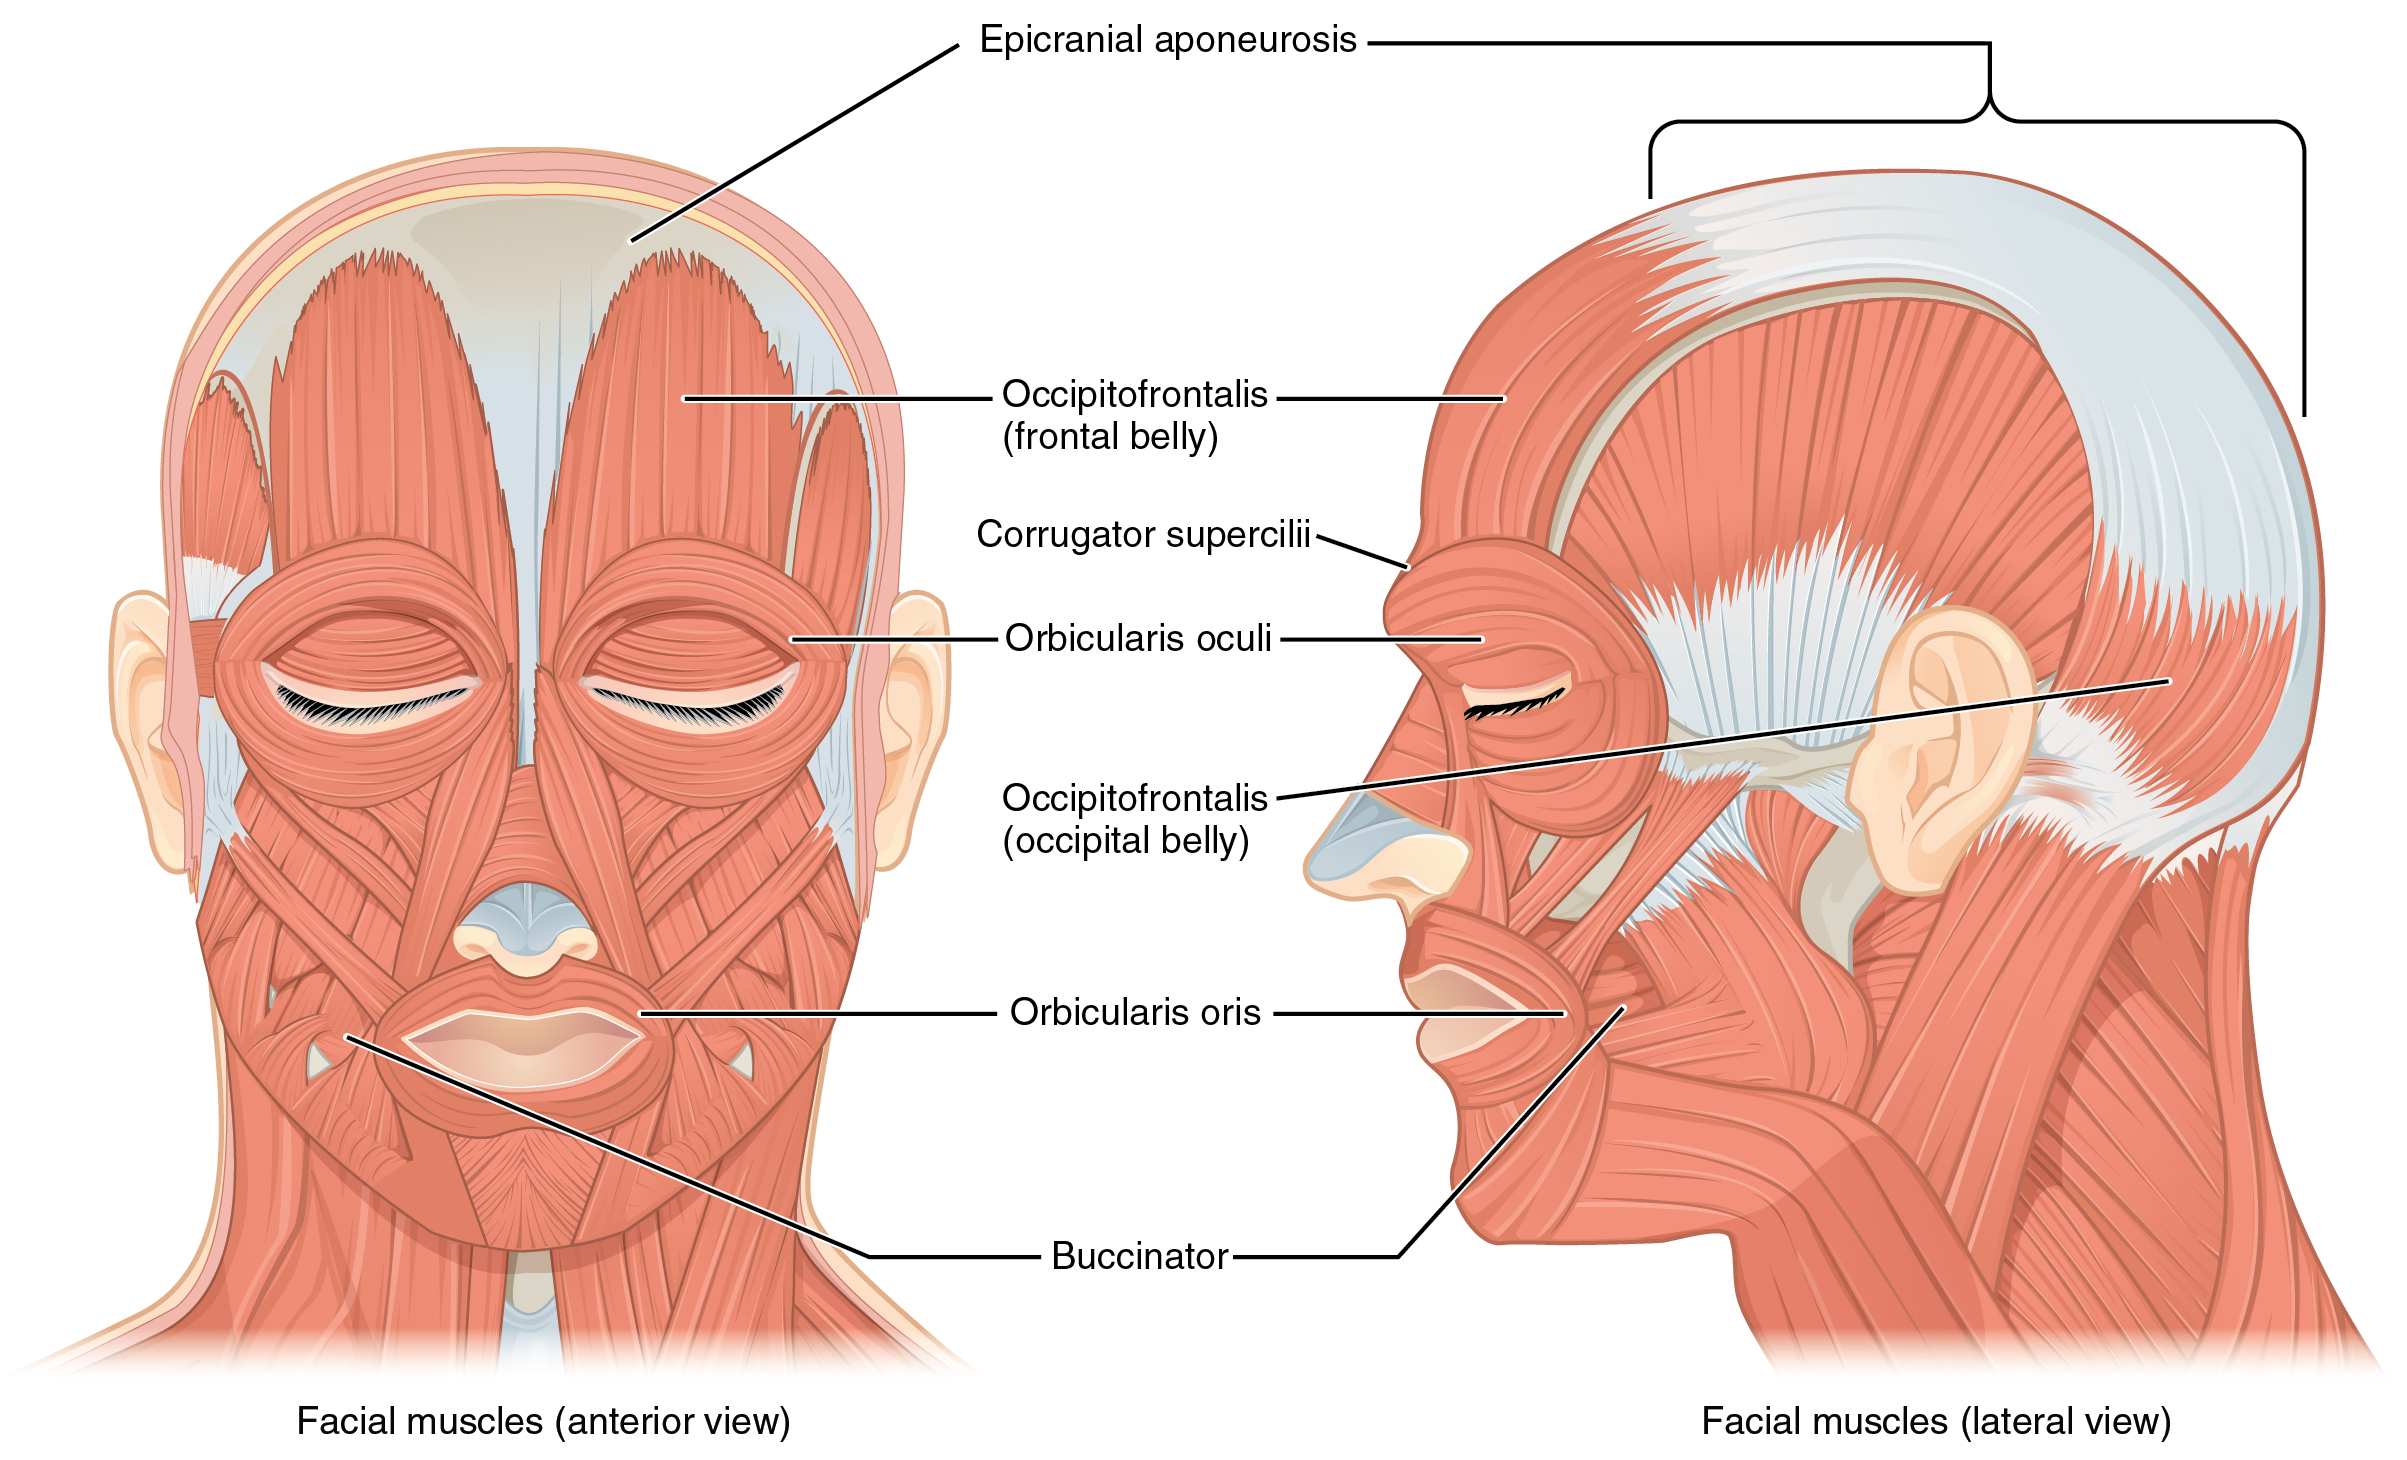 113 Axial Muscles Of The Head Neck And Back Anatomy Physiology Figure Diagram Showing Placement Surround Sound Speakers Left Panel In This Shows Anterior View Facial